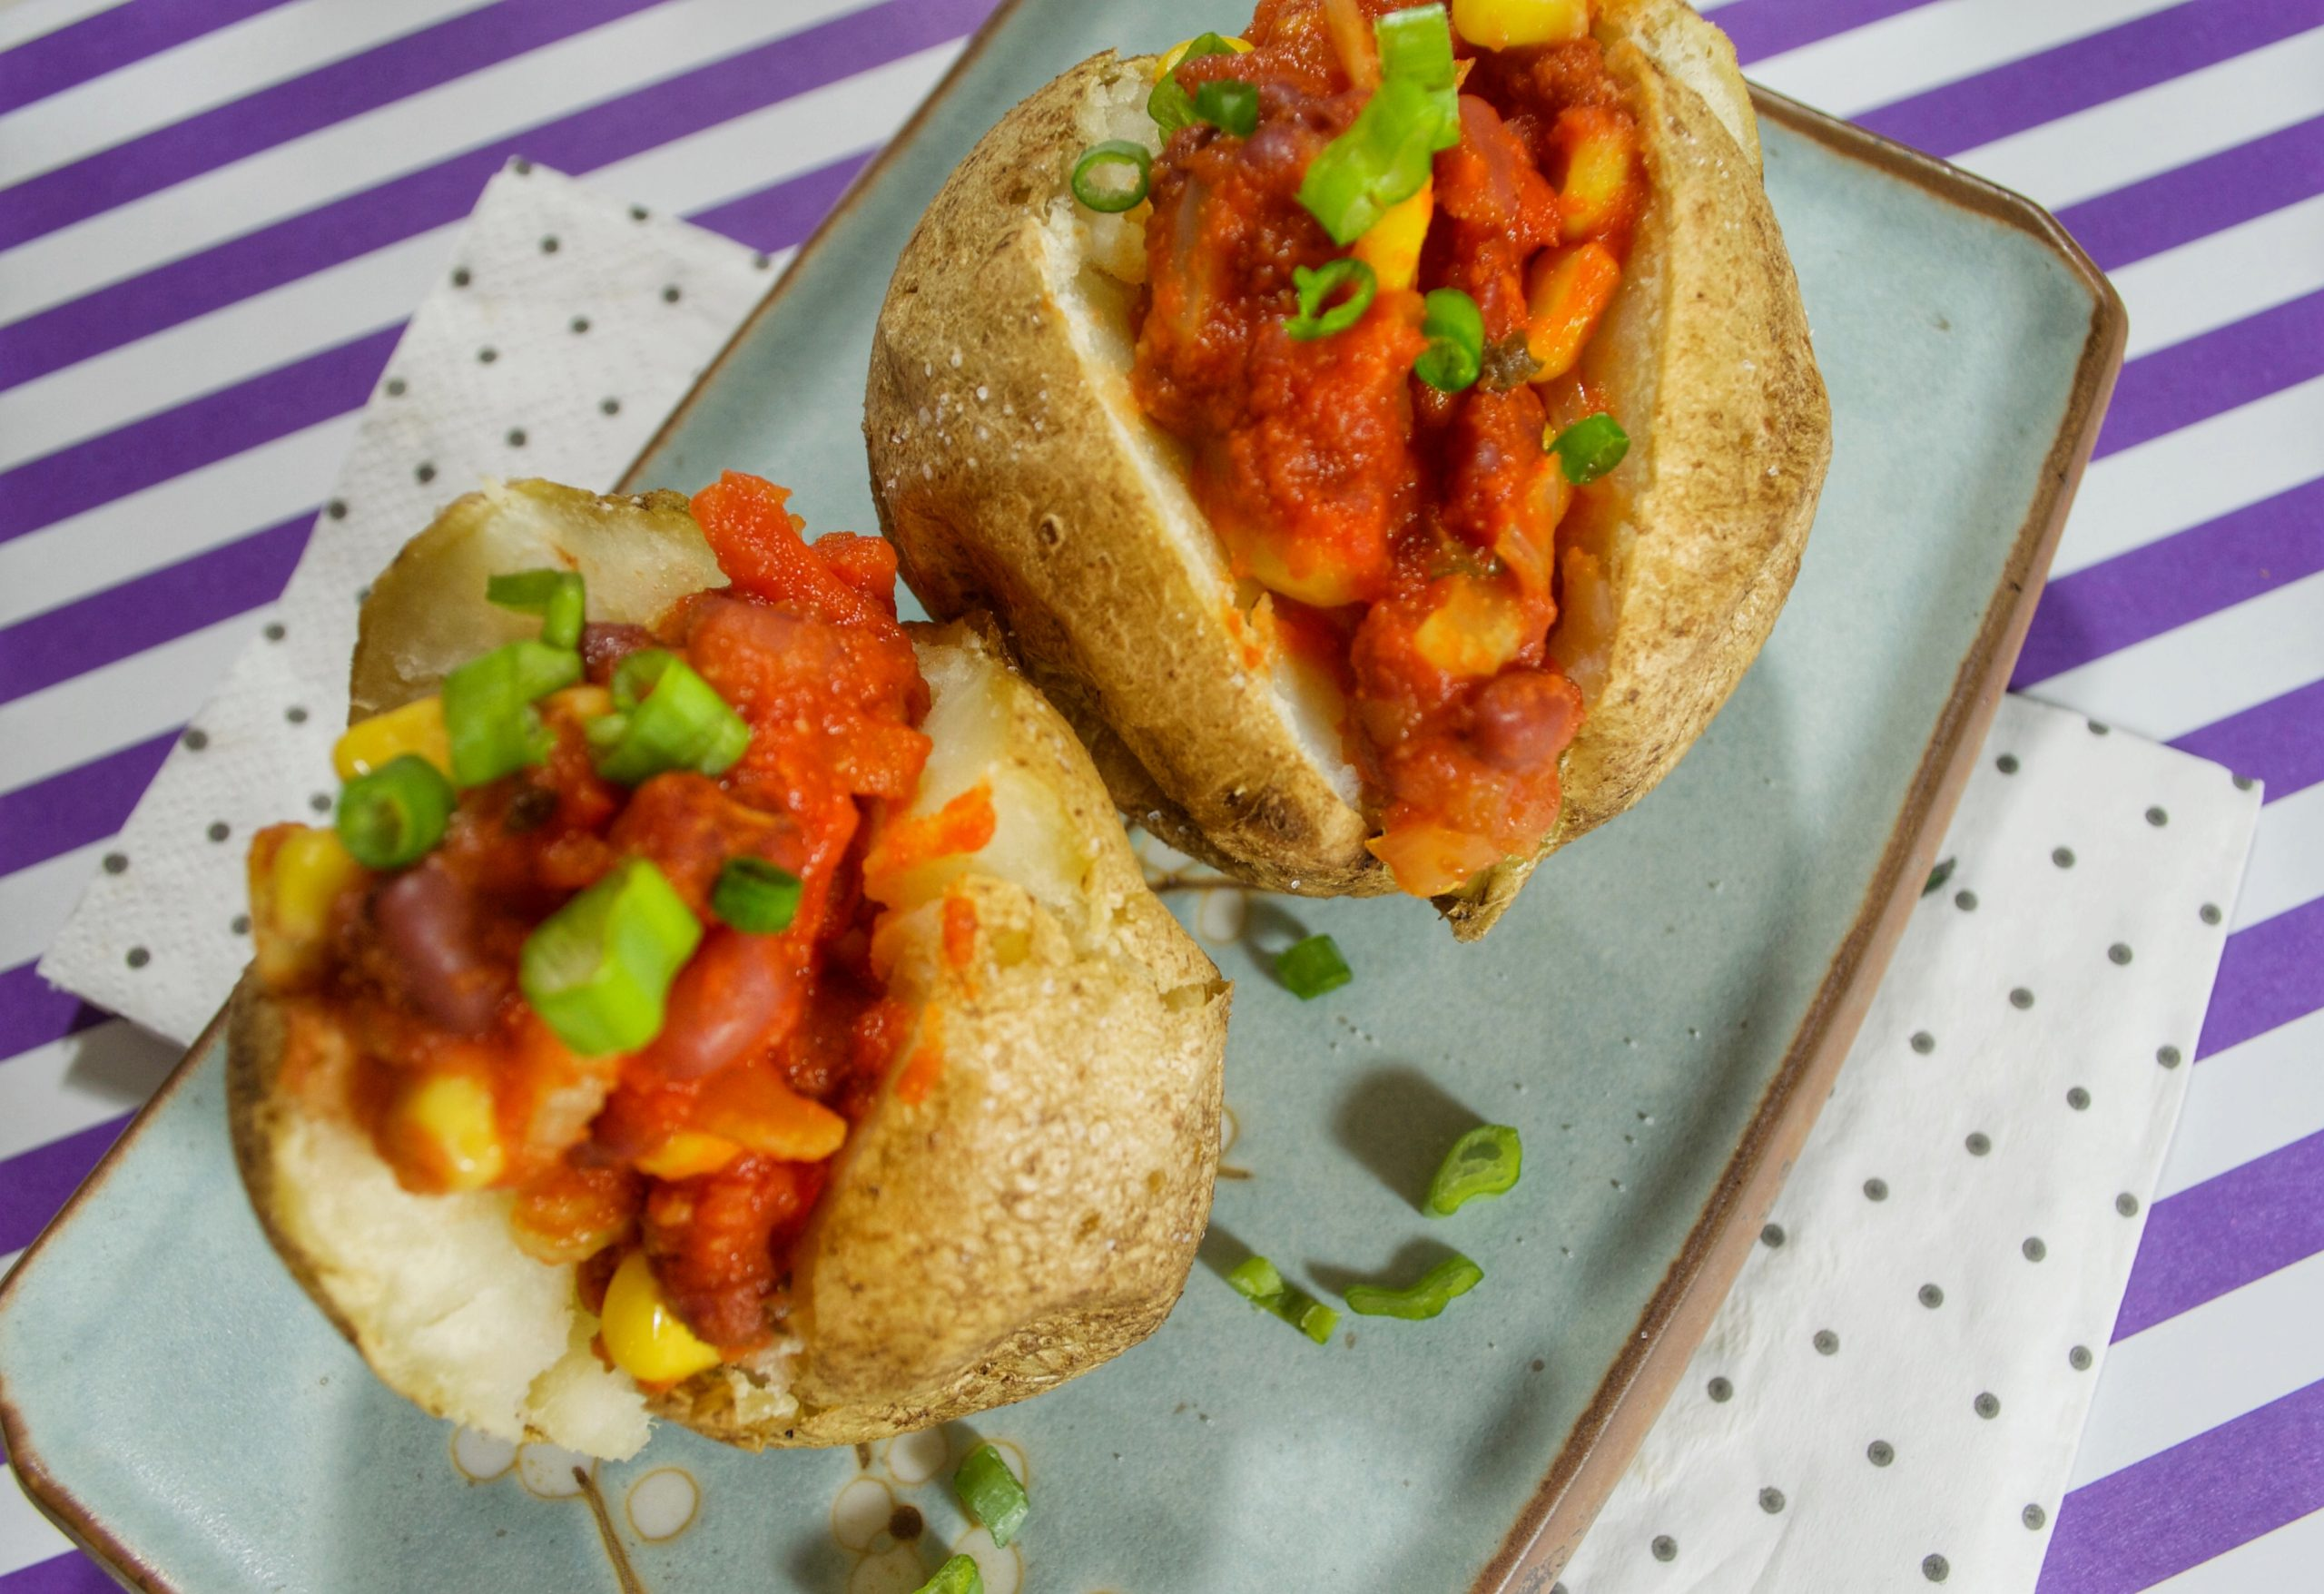 Baked potatoes loaded with vegan chilli